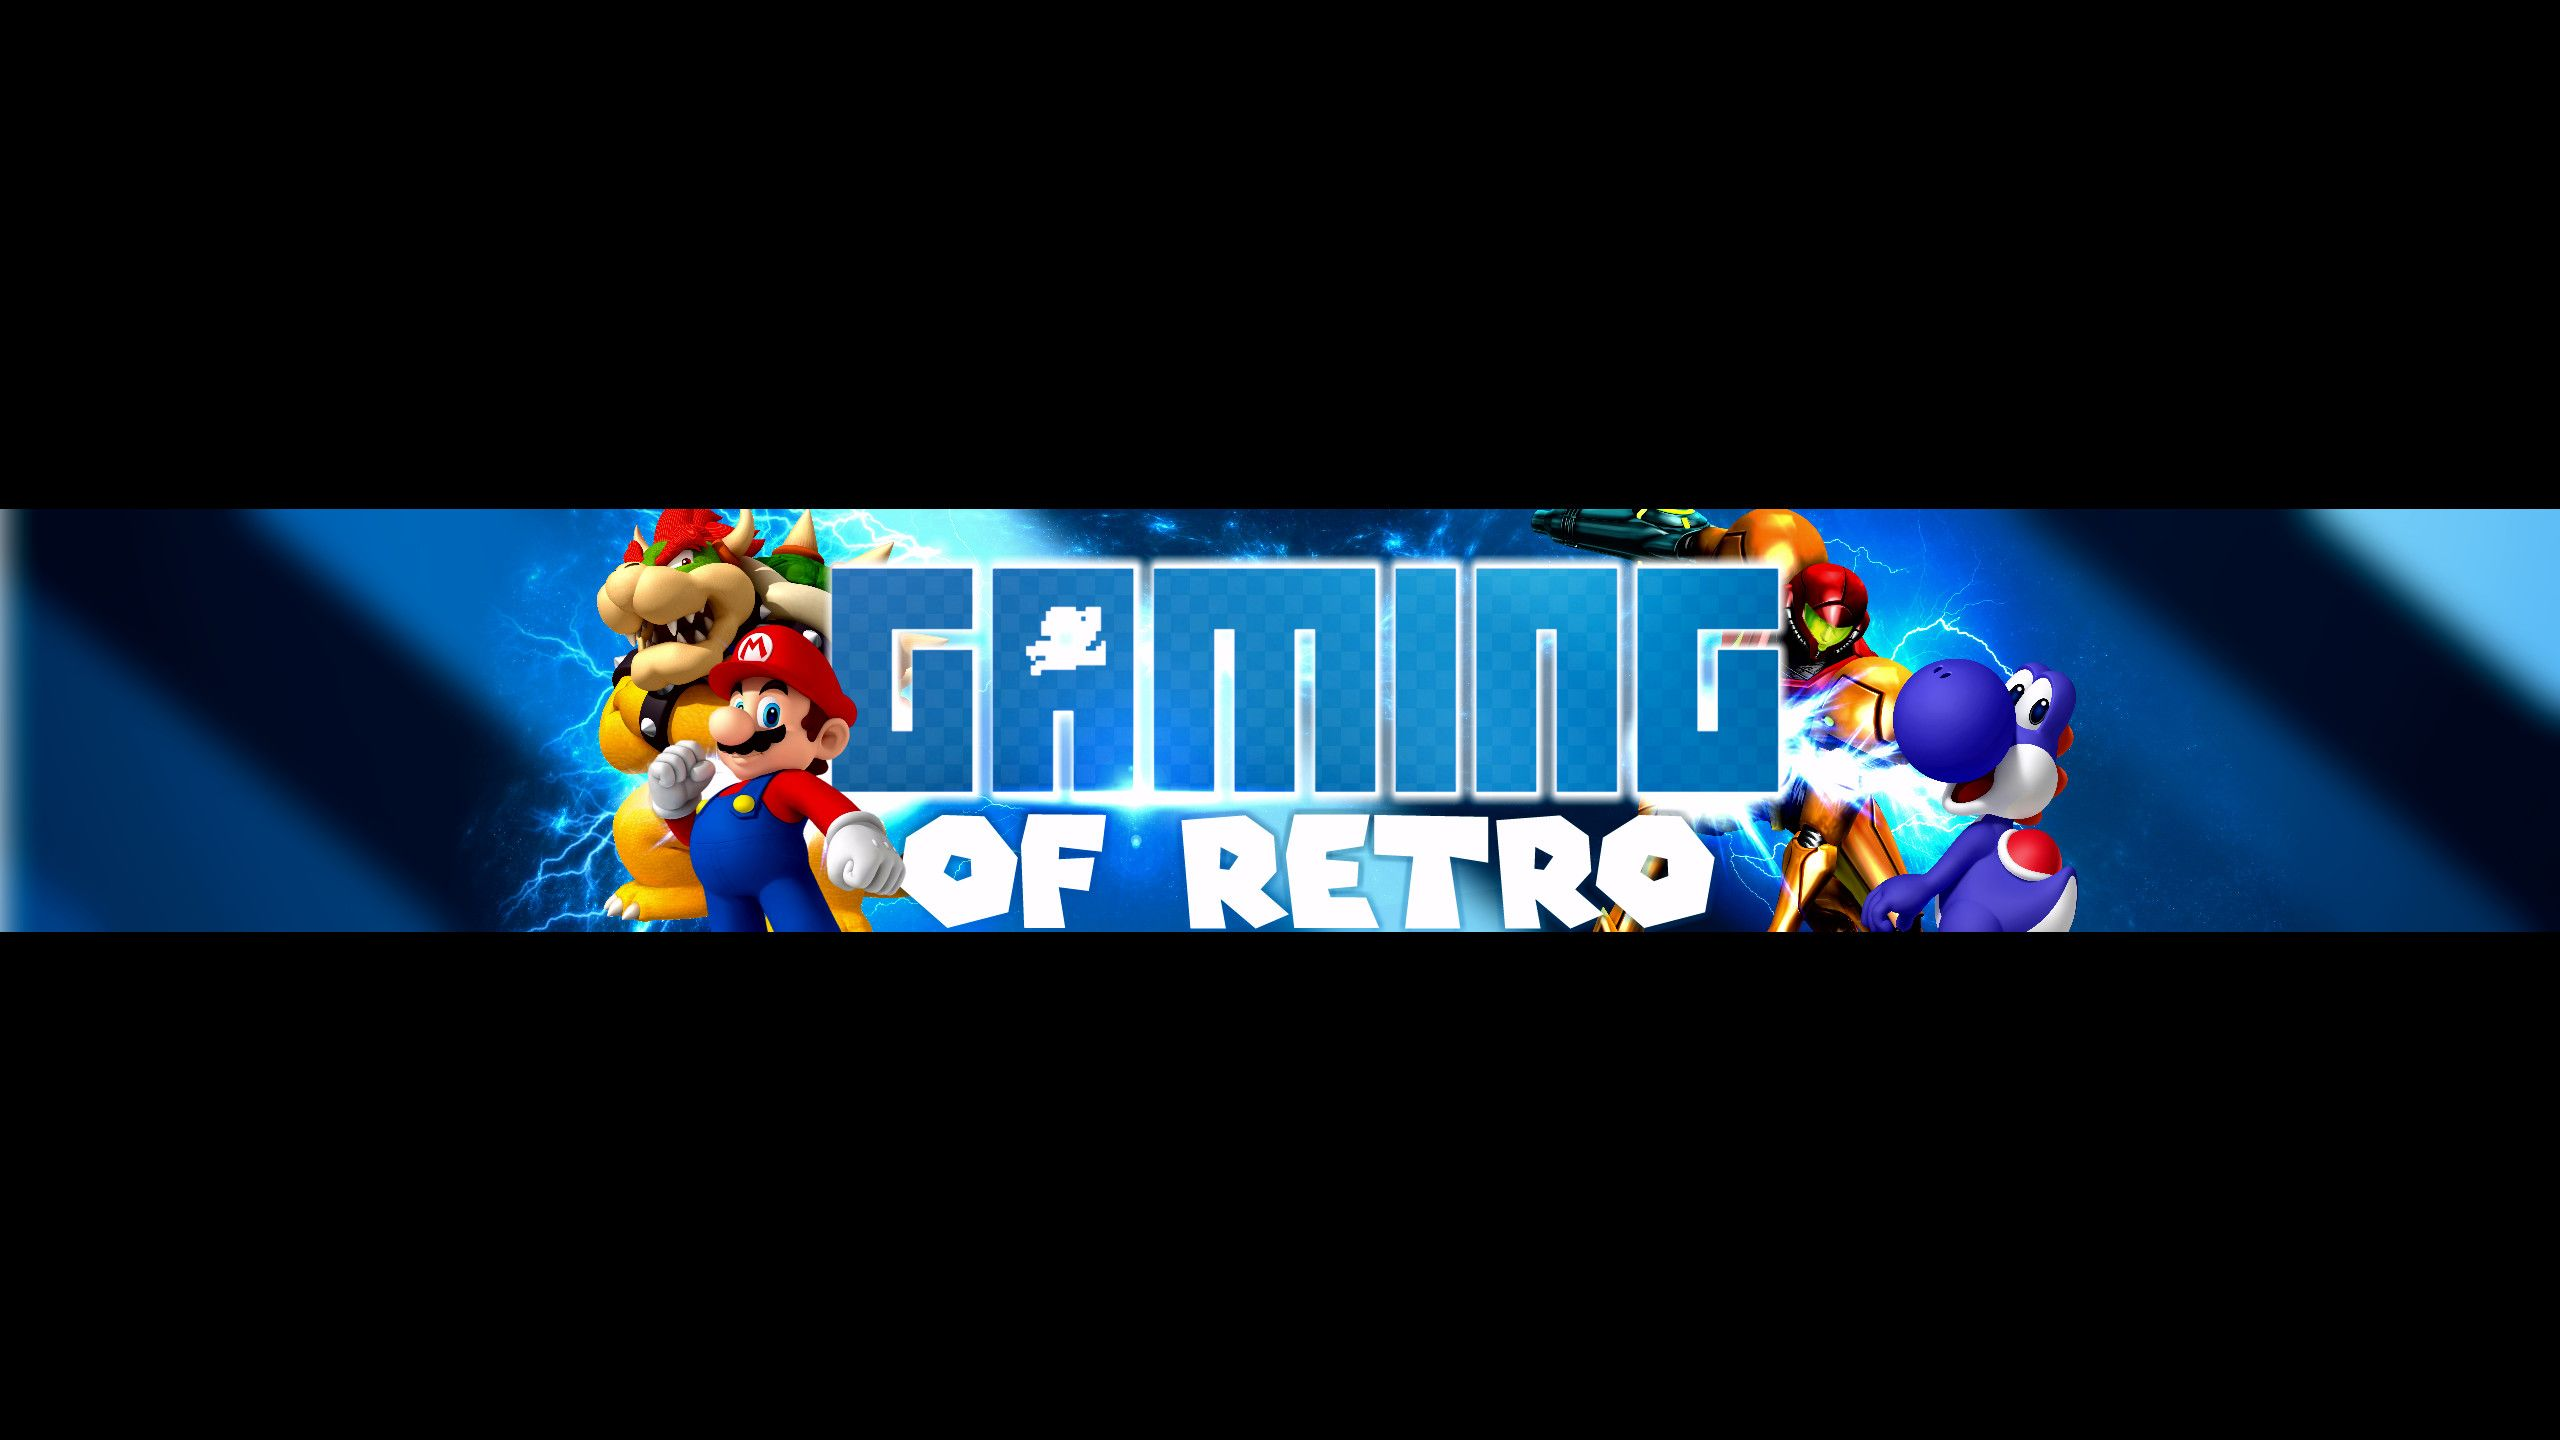 2560x1440 Gaming Of Retro Youtube Banner By Nitrorex